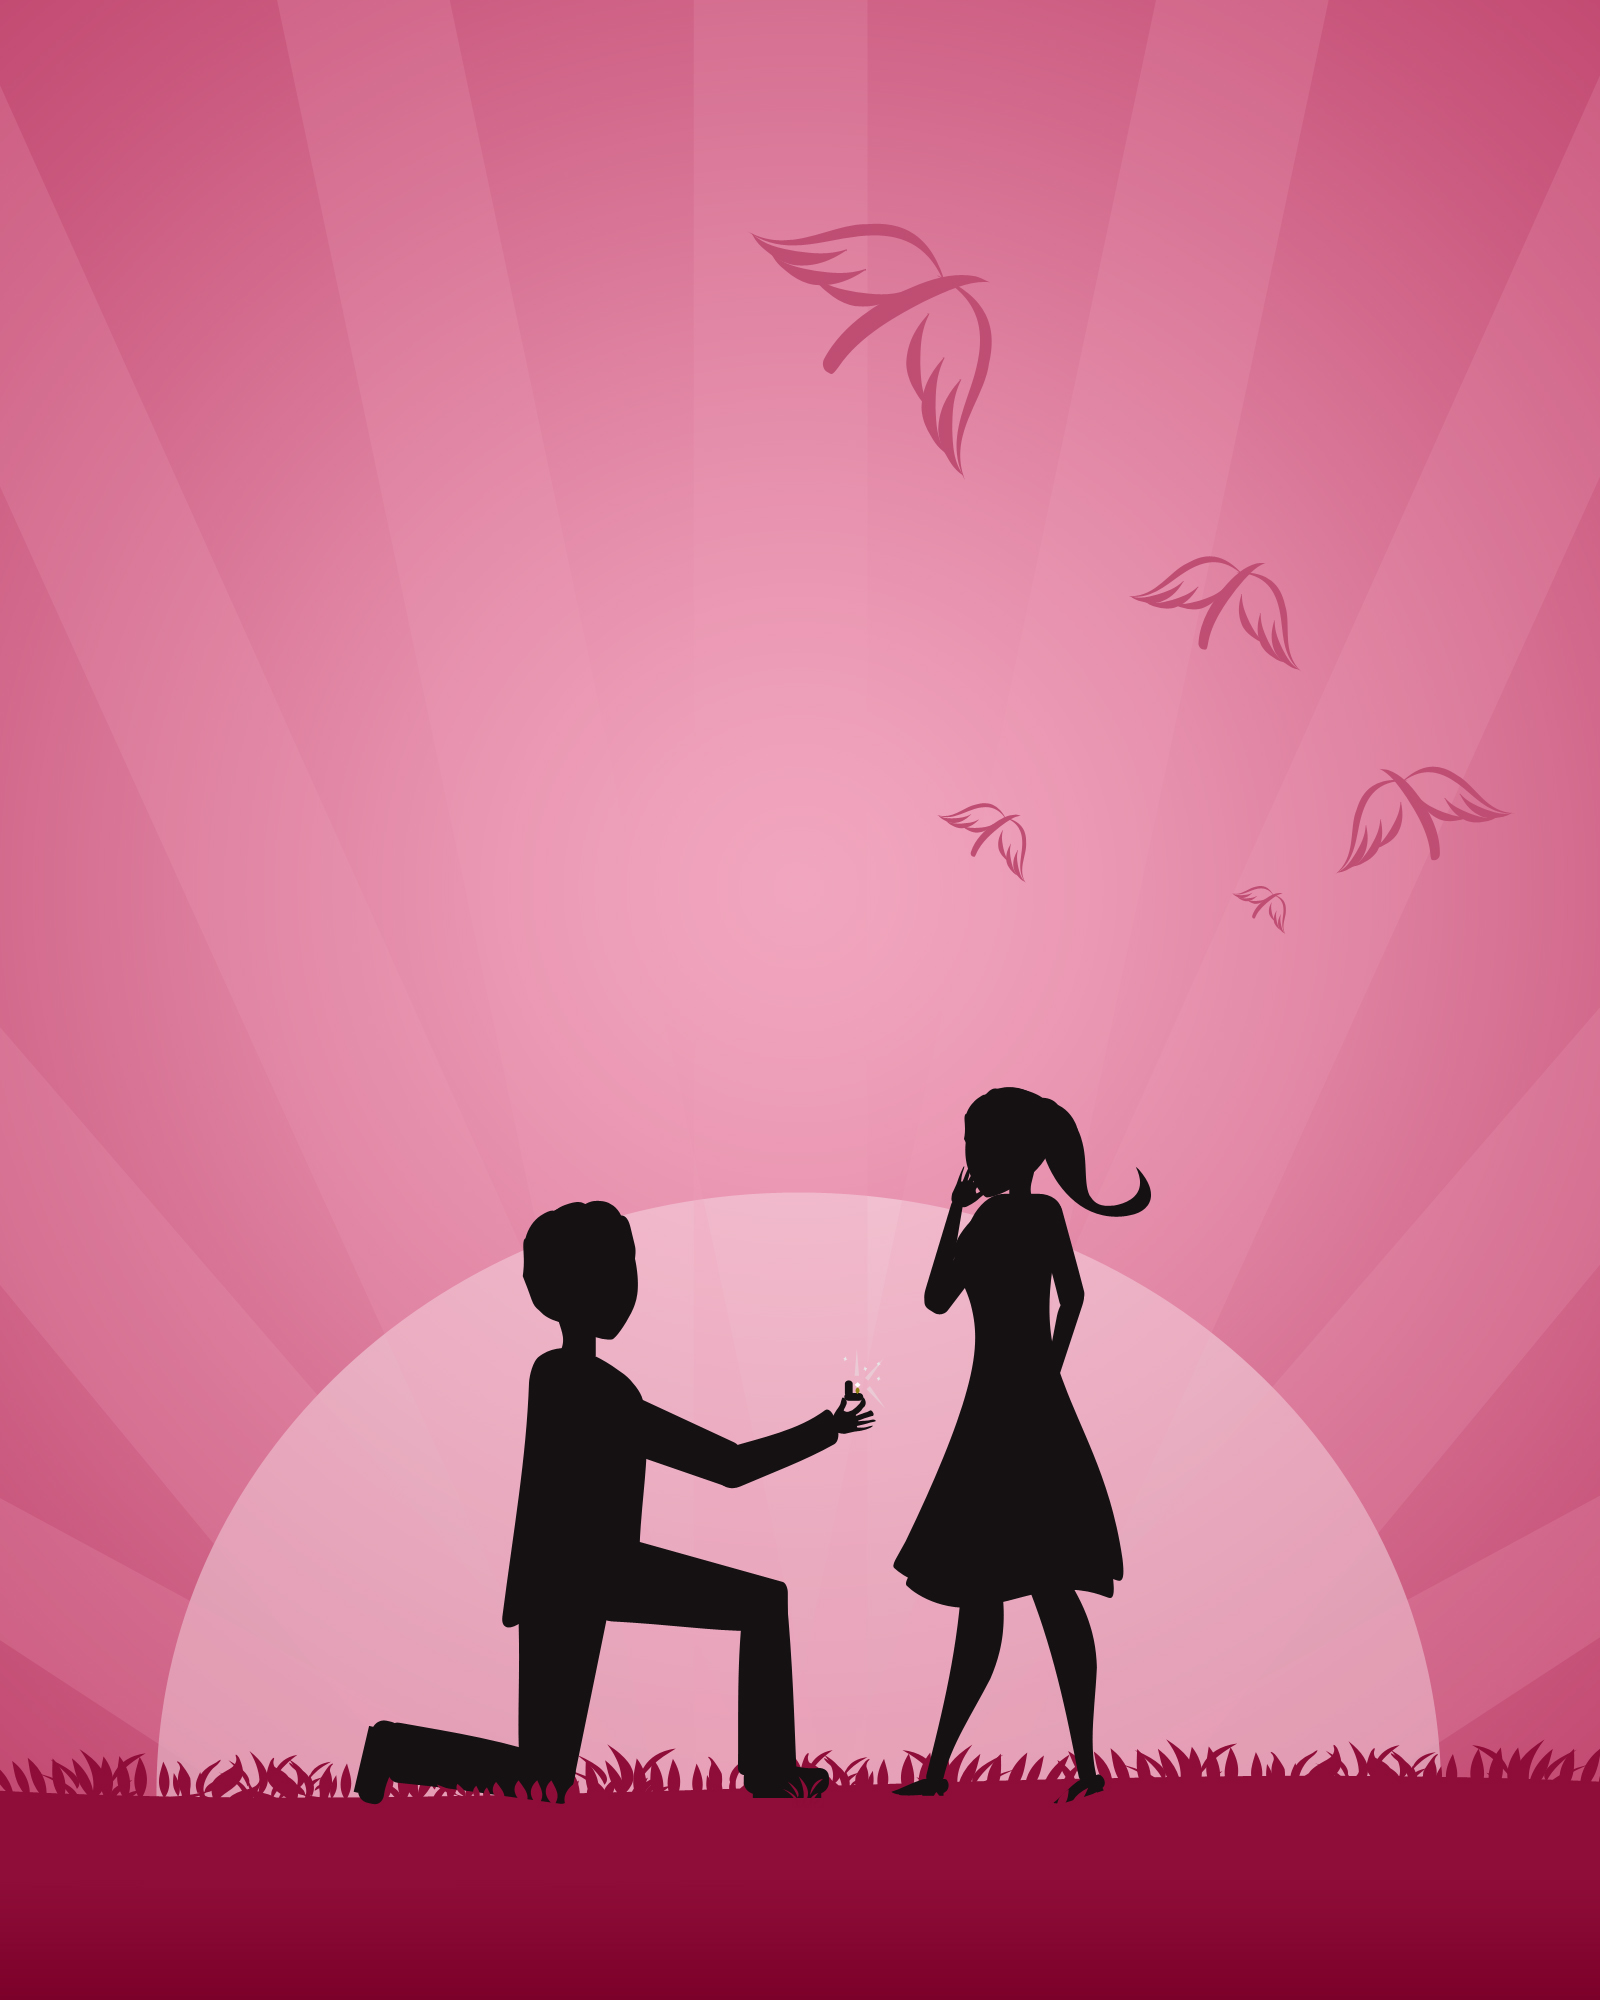 Make your proposal one to remember - Flower PressFlower Press